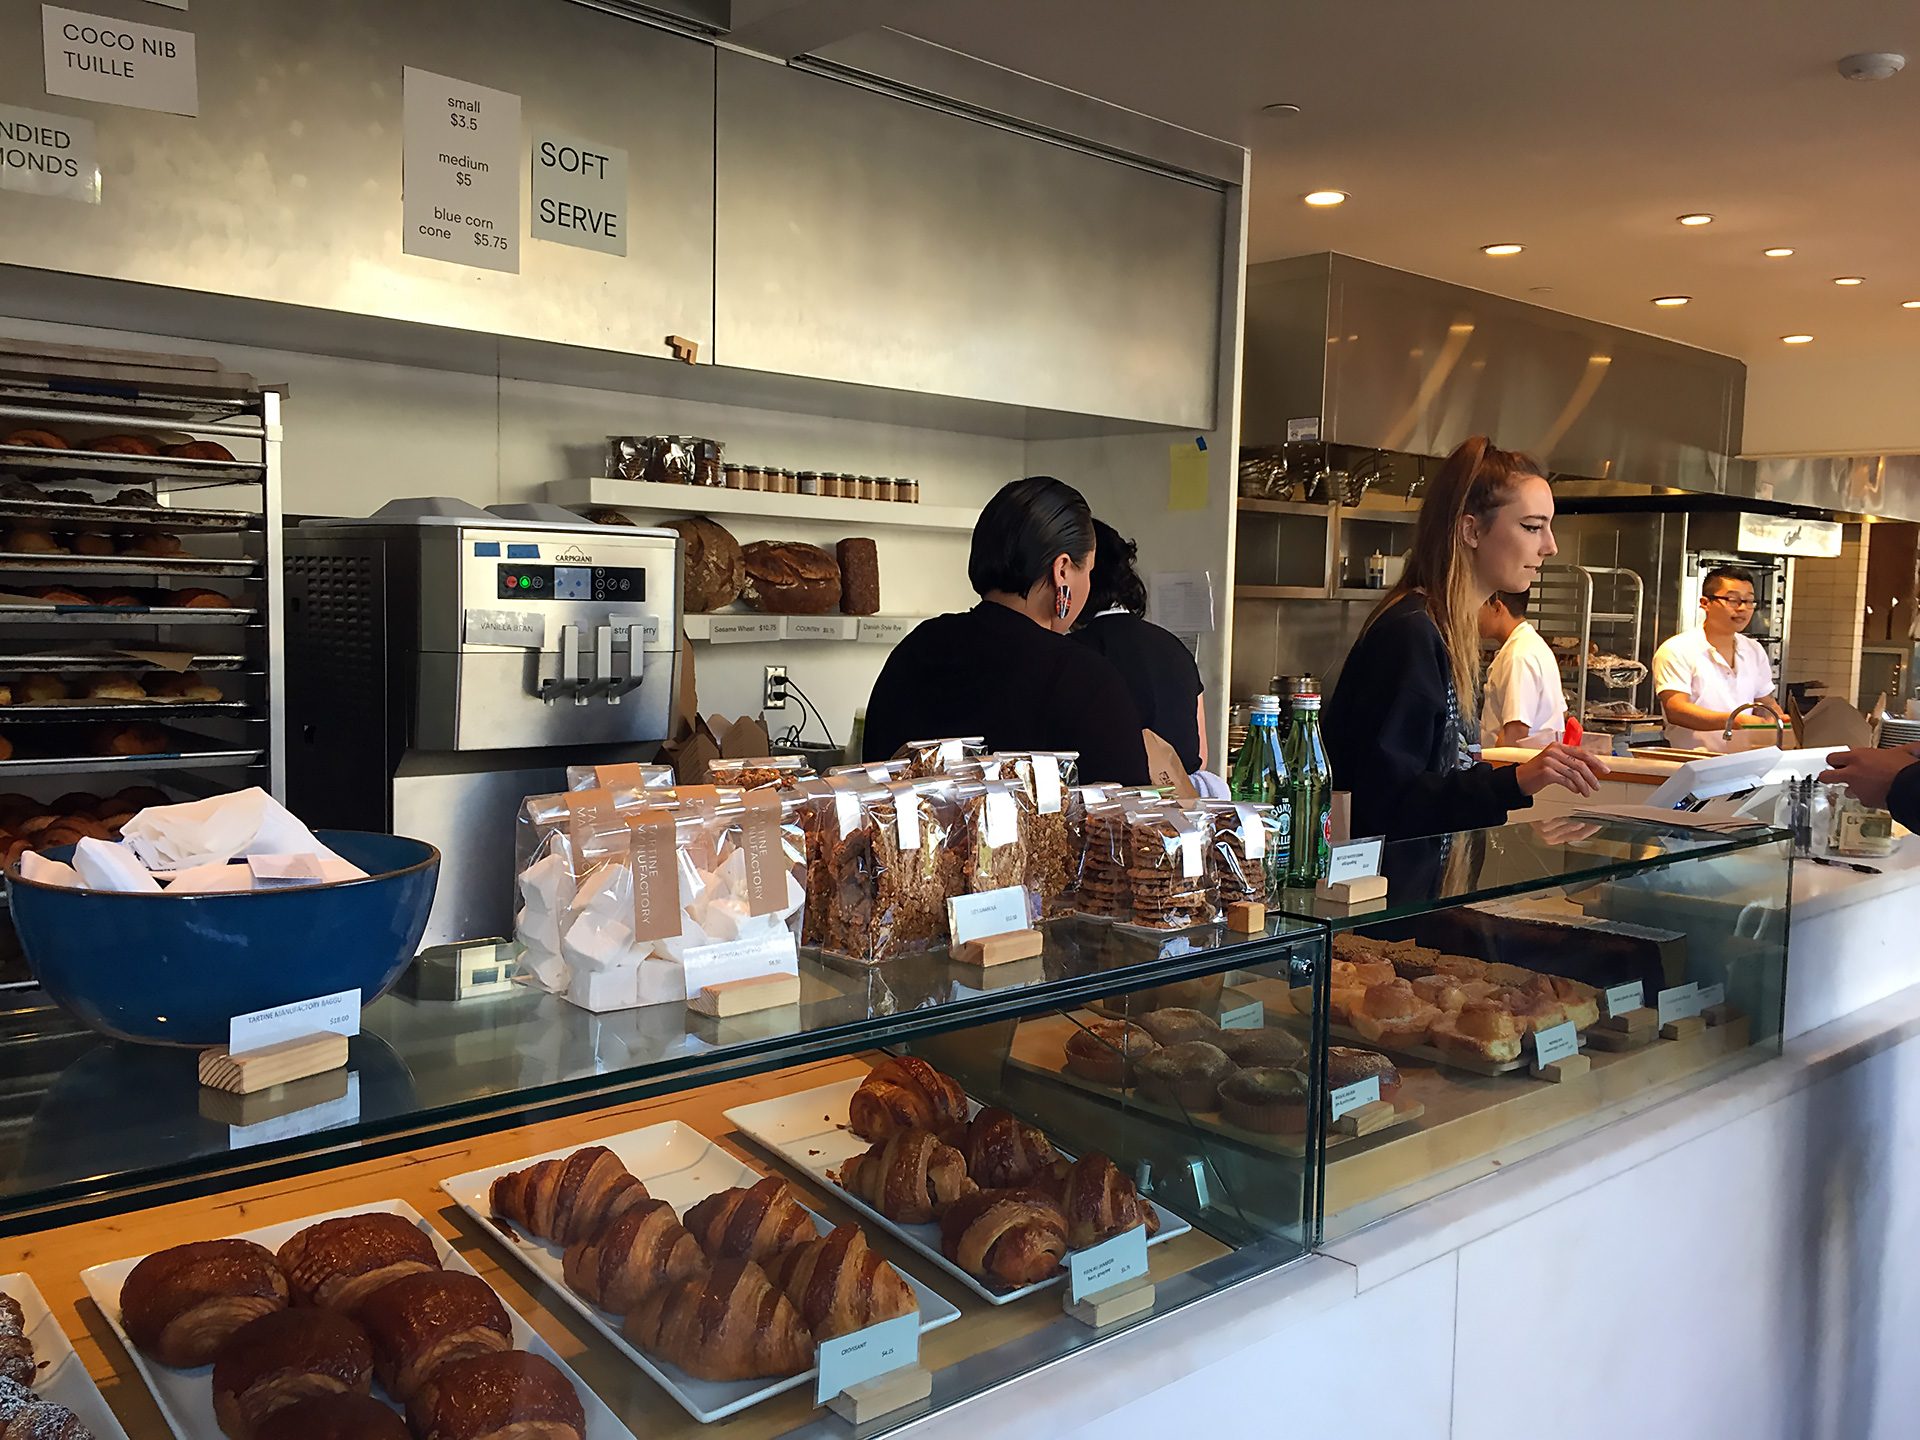 Tartine's bread and pastries on display at the Manufactory.